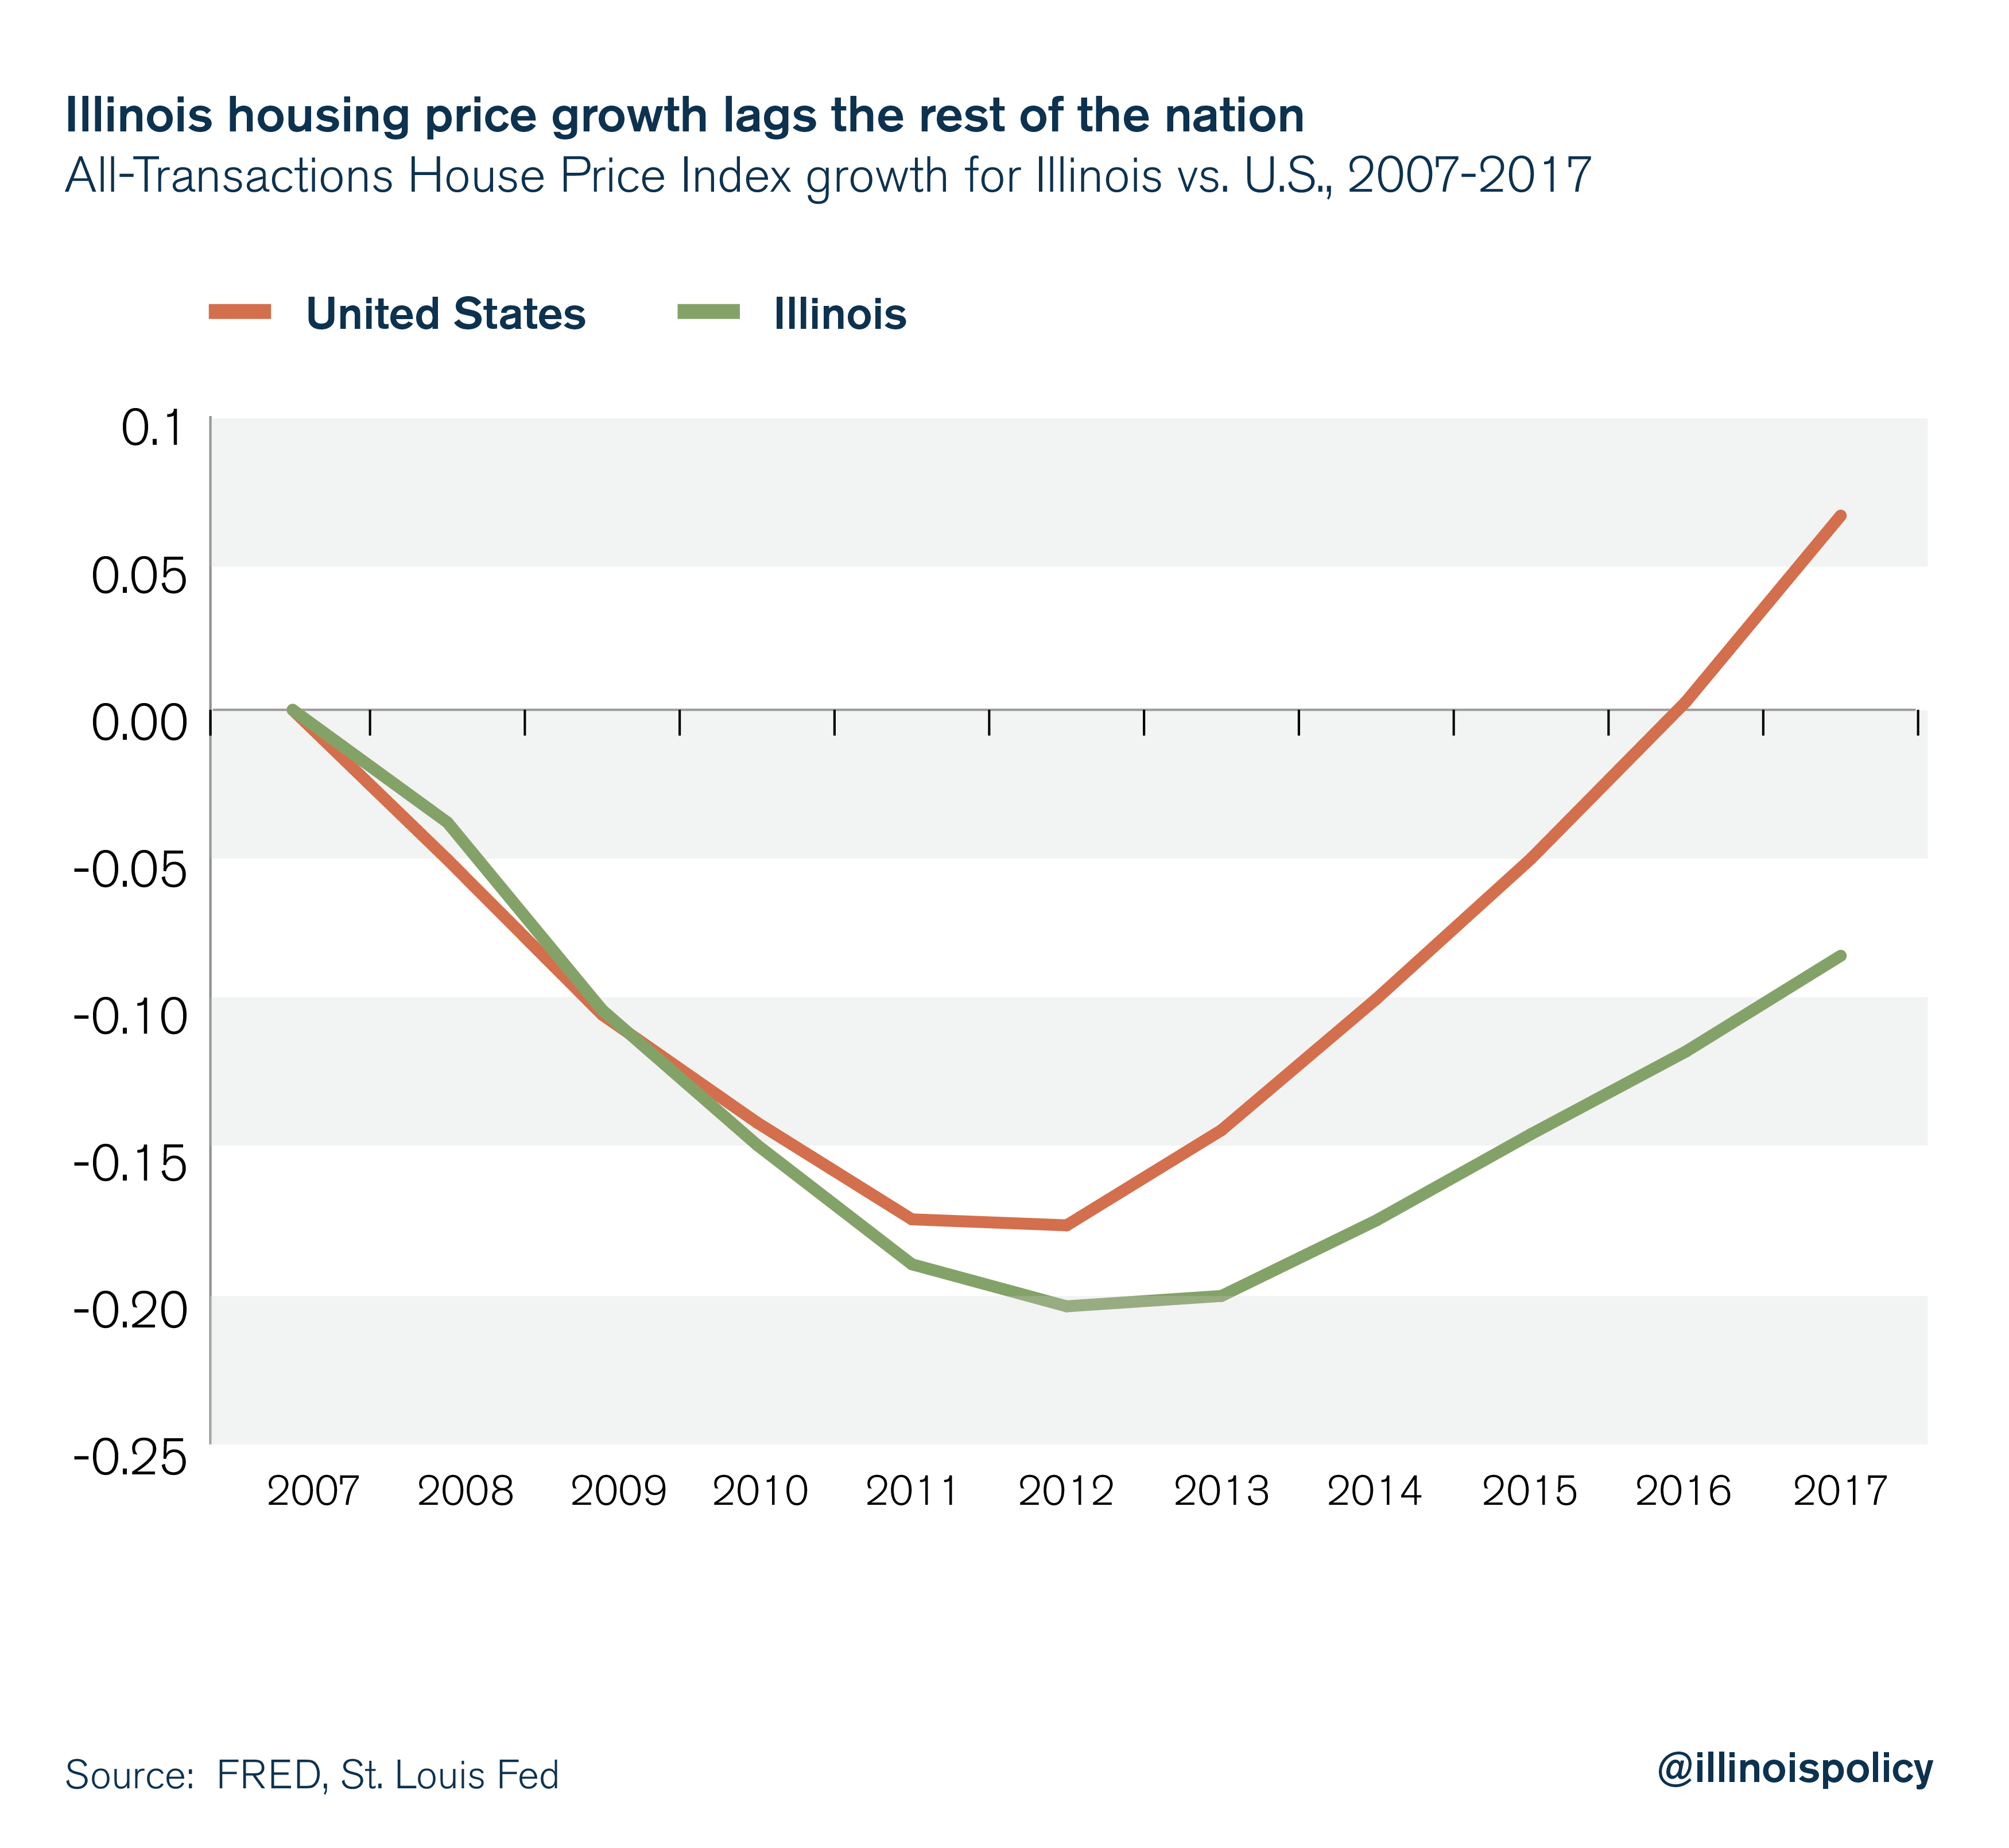 Illinois housing price growth lags the rest of the nation